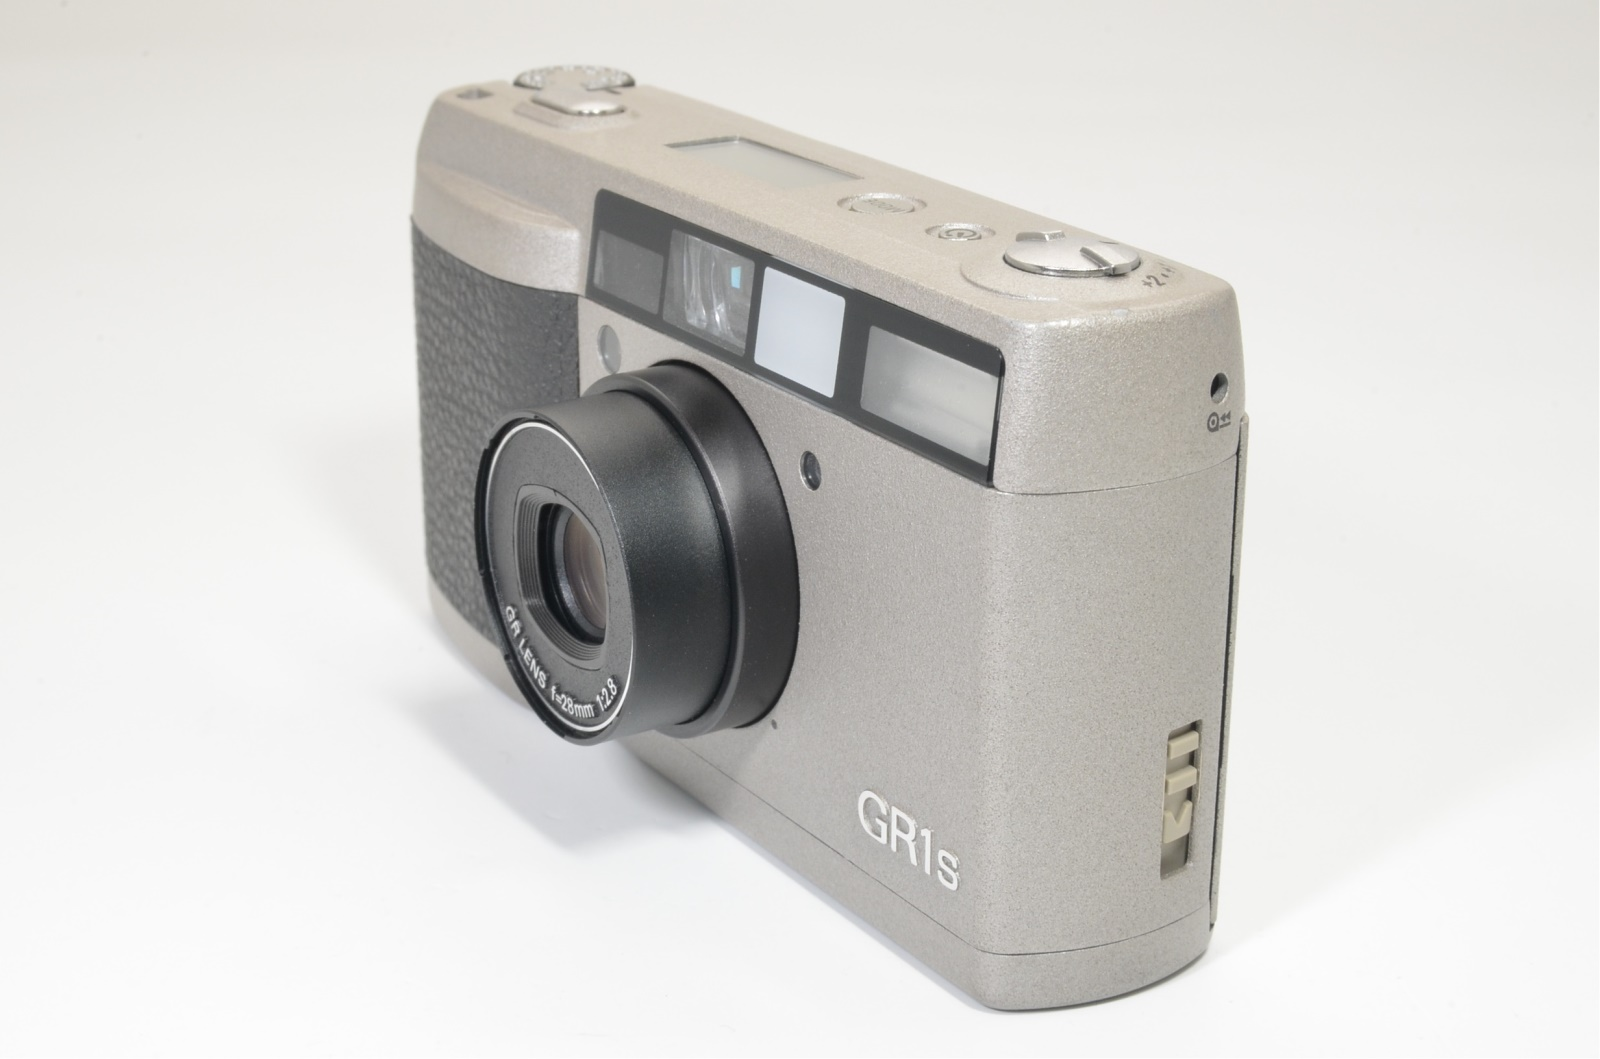 ricoh gr1s date silver 28mm f2.8 p&s film camera from japan shooting tested